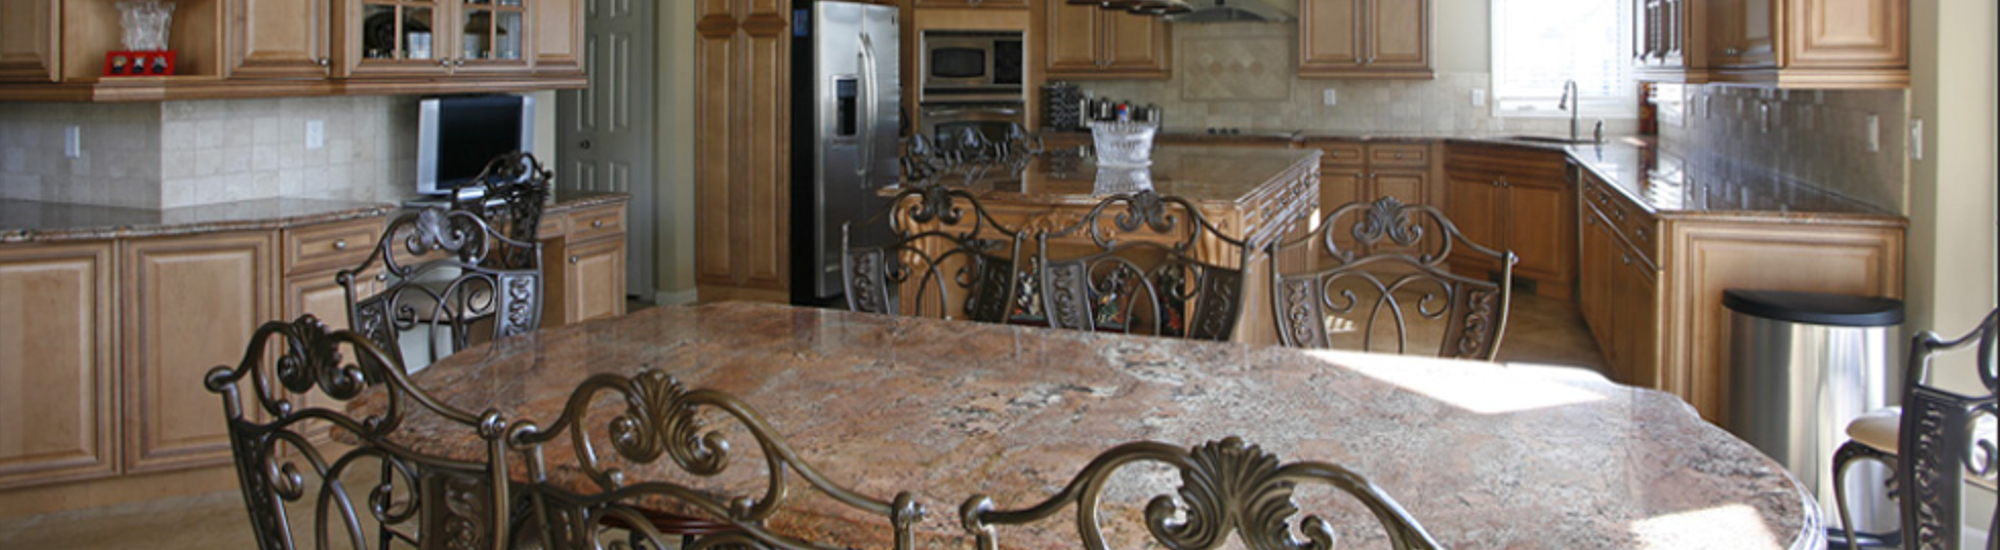 Extreme Granite And Marble Granite Countertops Marble Countertops Kitchen And Bathroom